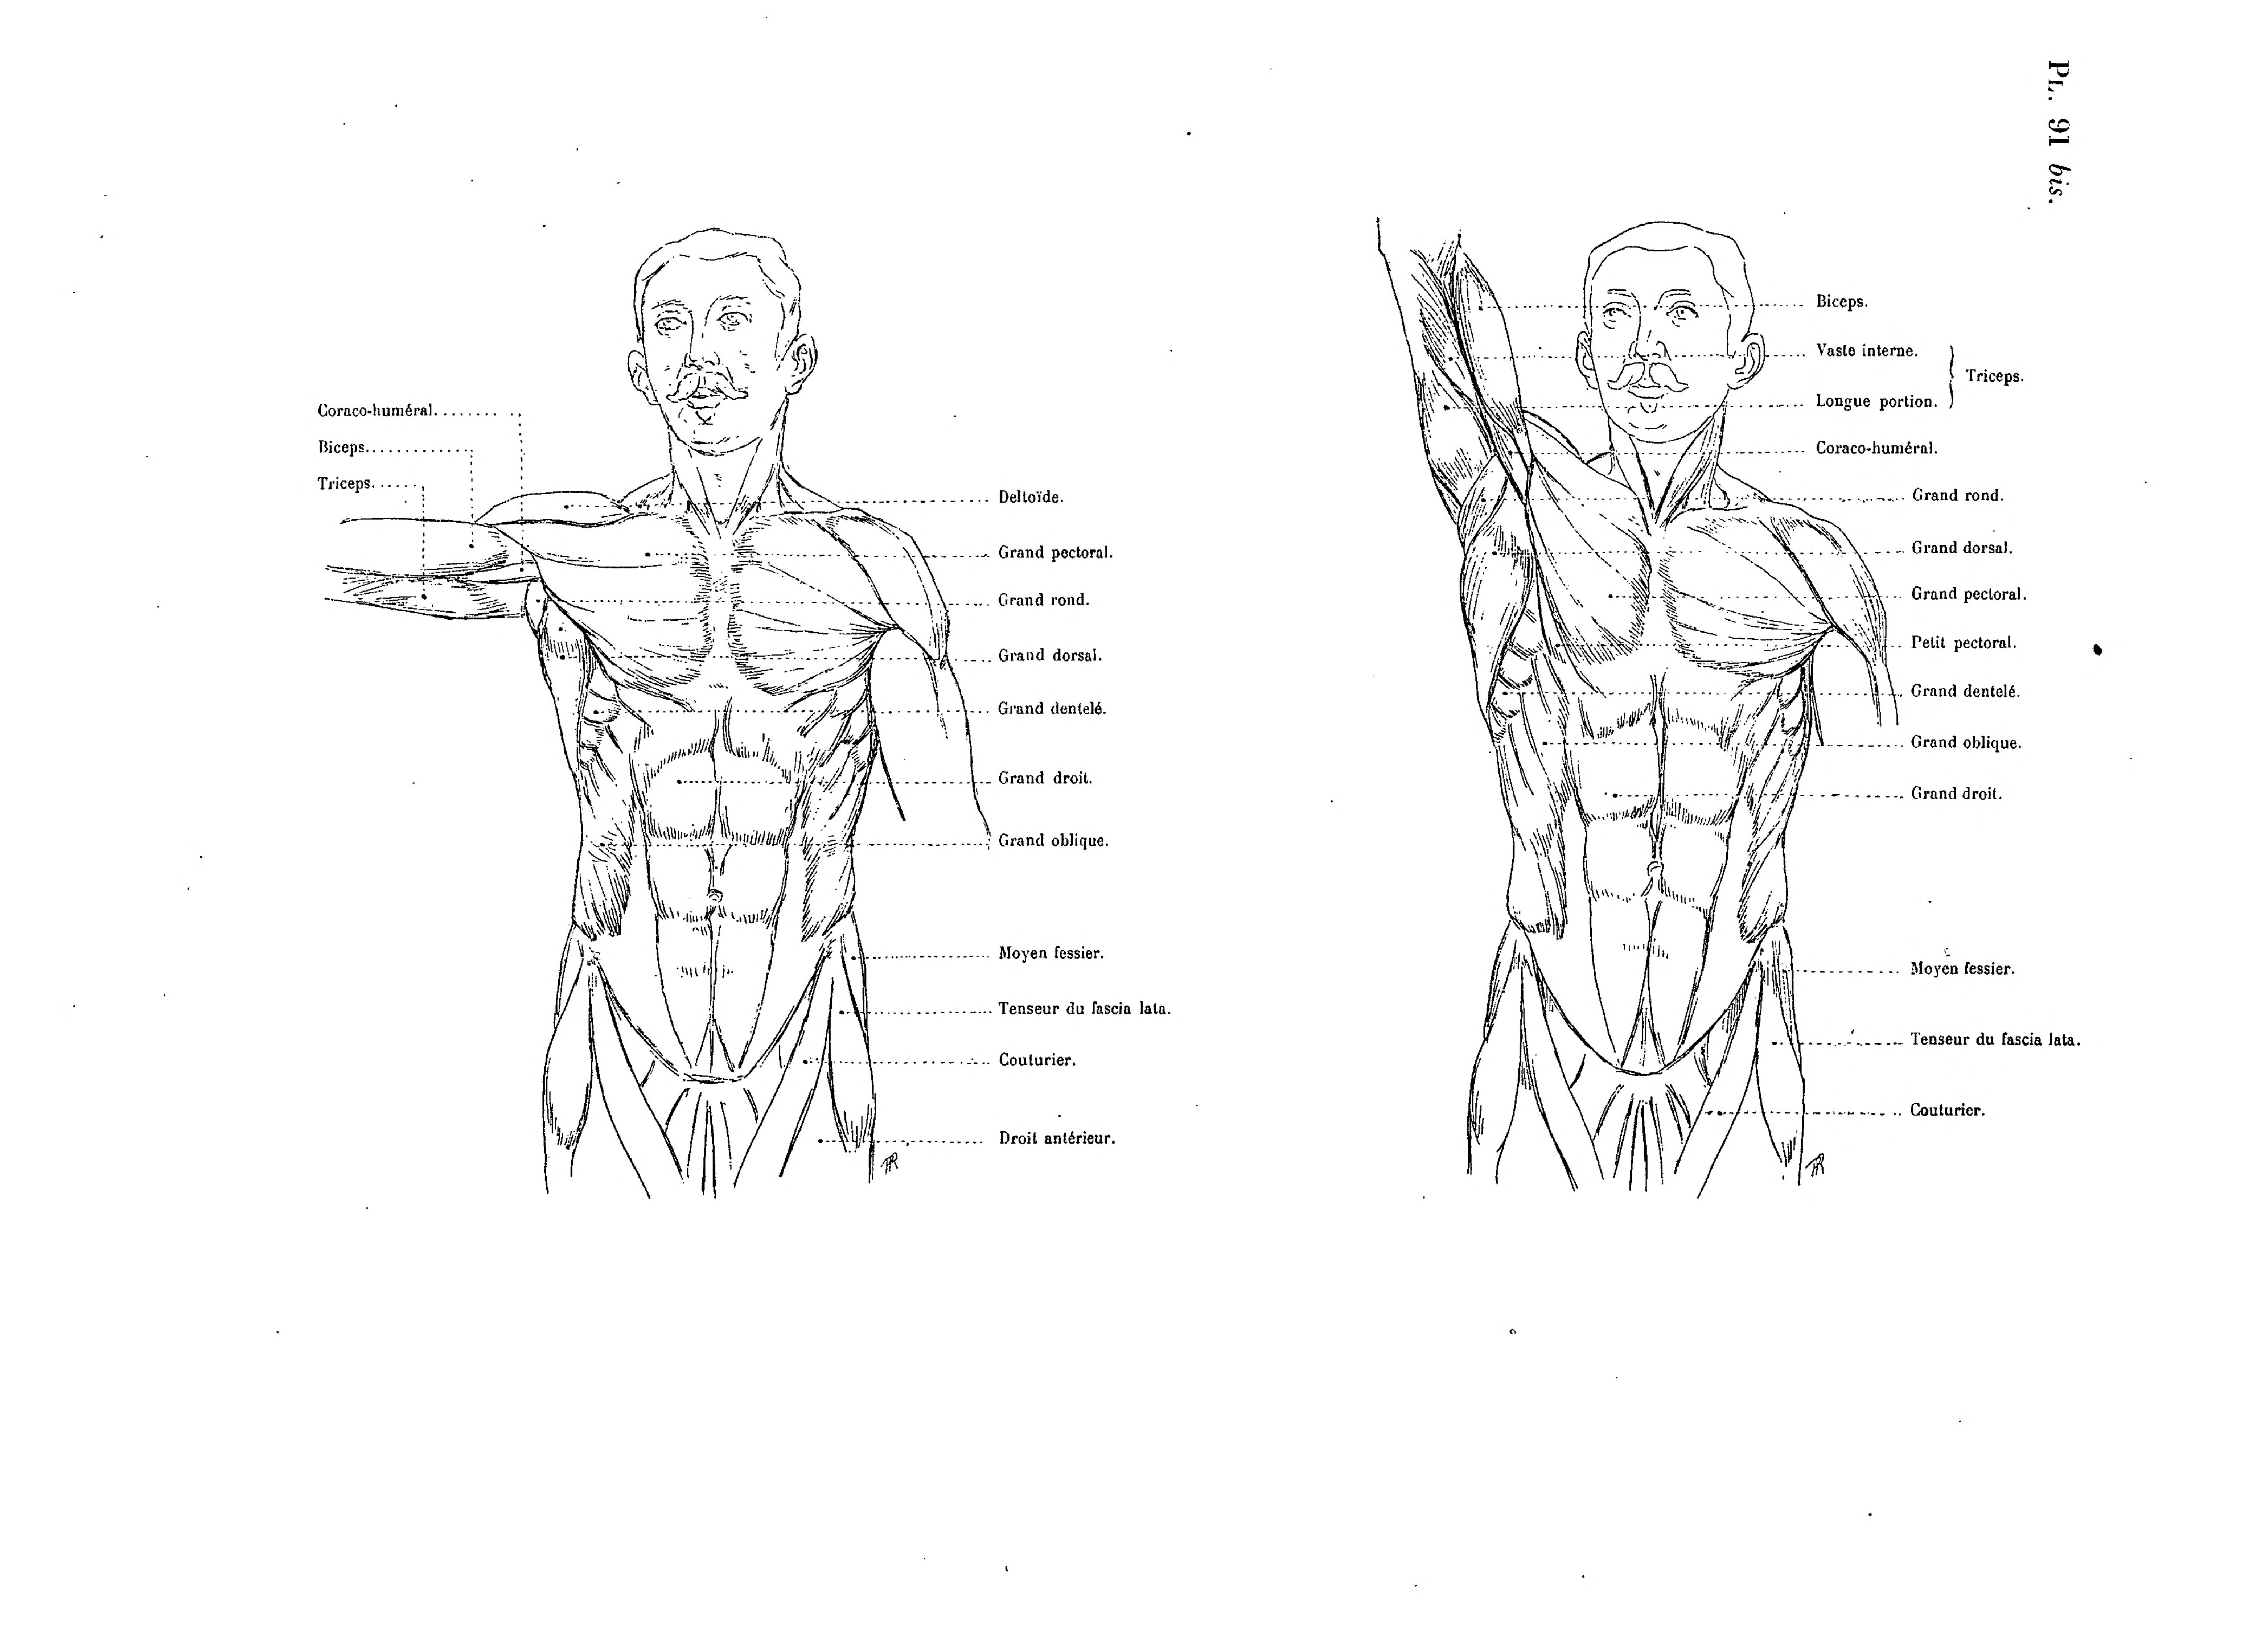 File:Richer - Anatomie artistique, 2 p. 113.png - Wikimedia Commons